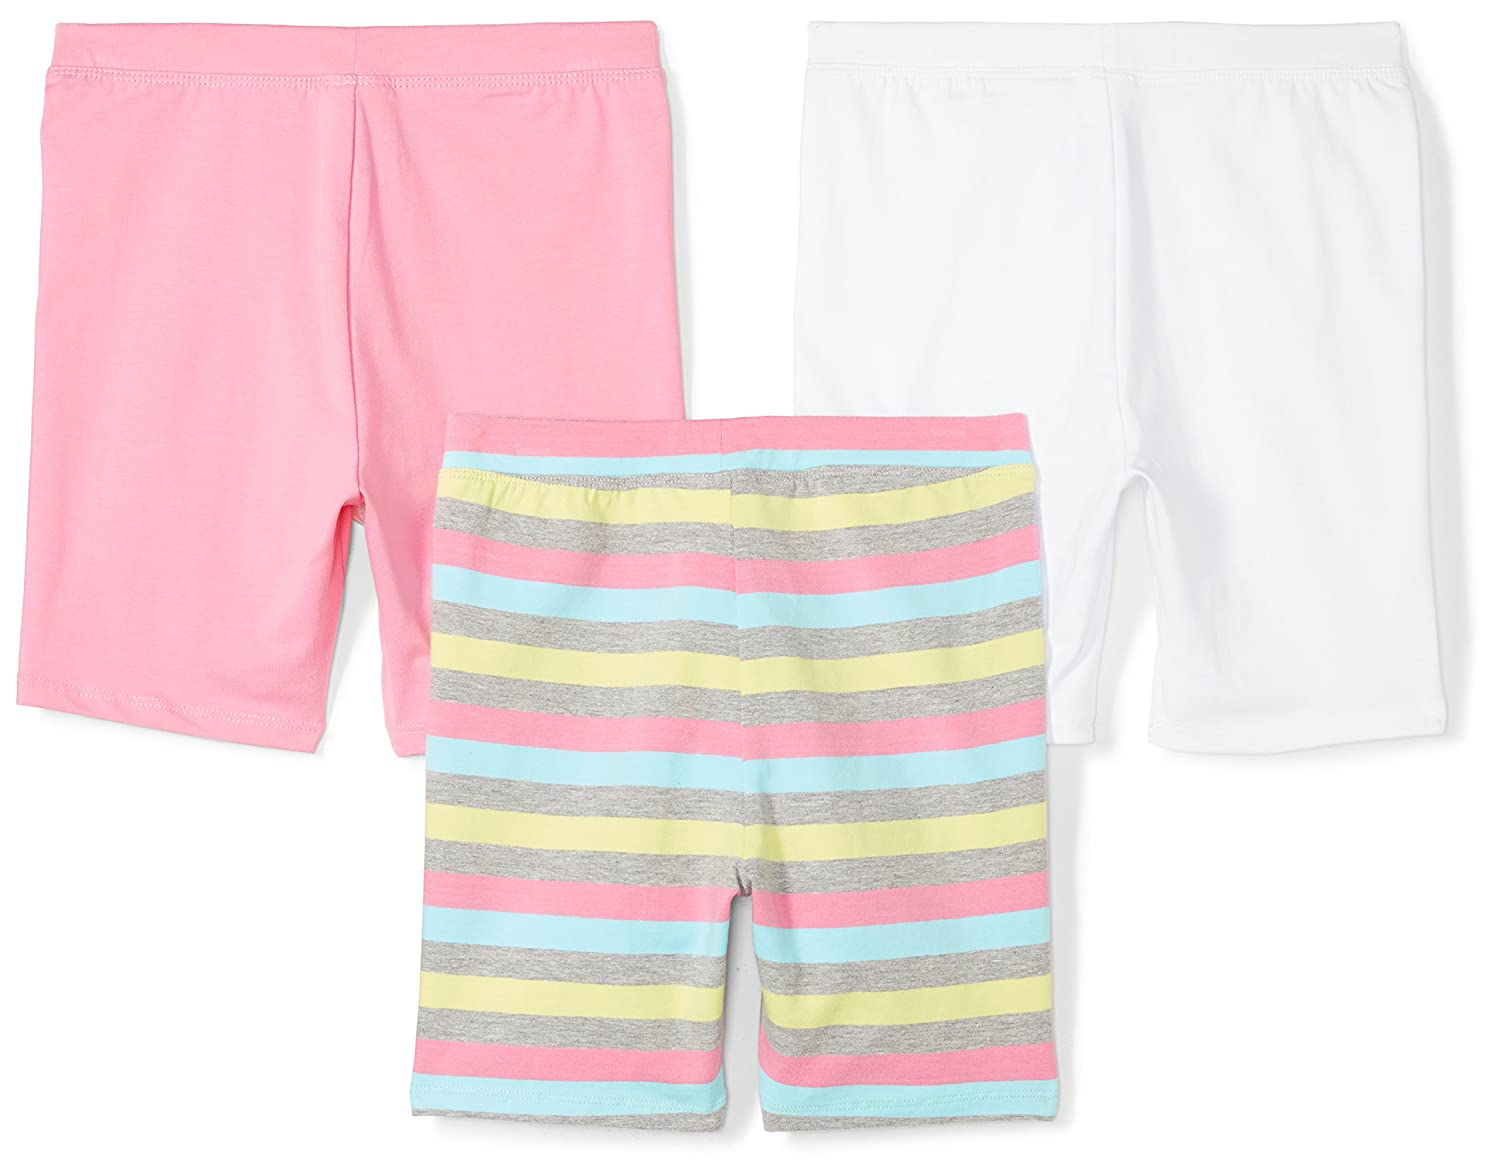 Spotted Zebra Girls Toddler /& Kids 3-Pack Bike Shorts Brand